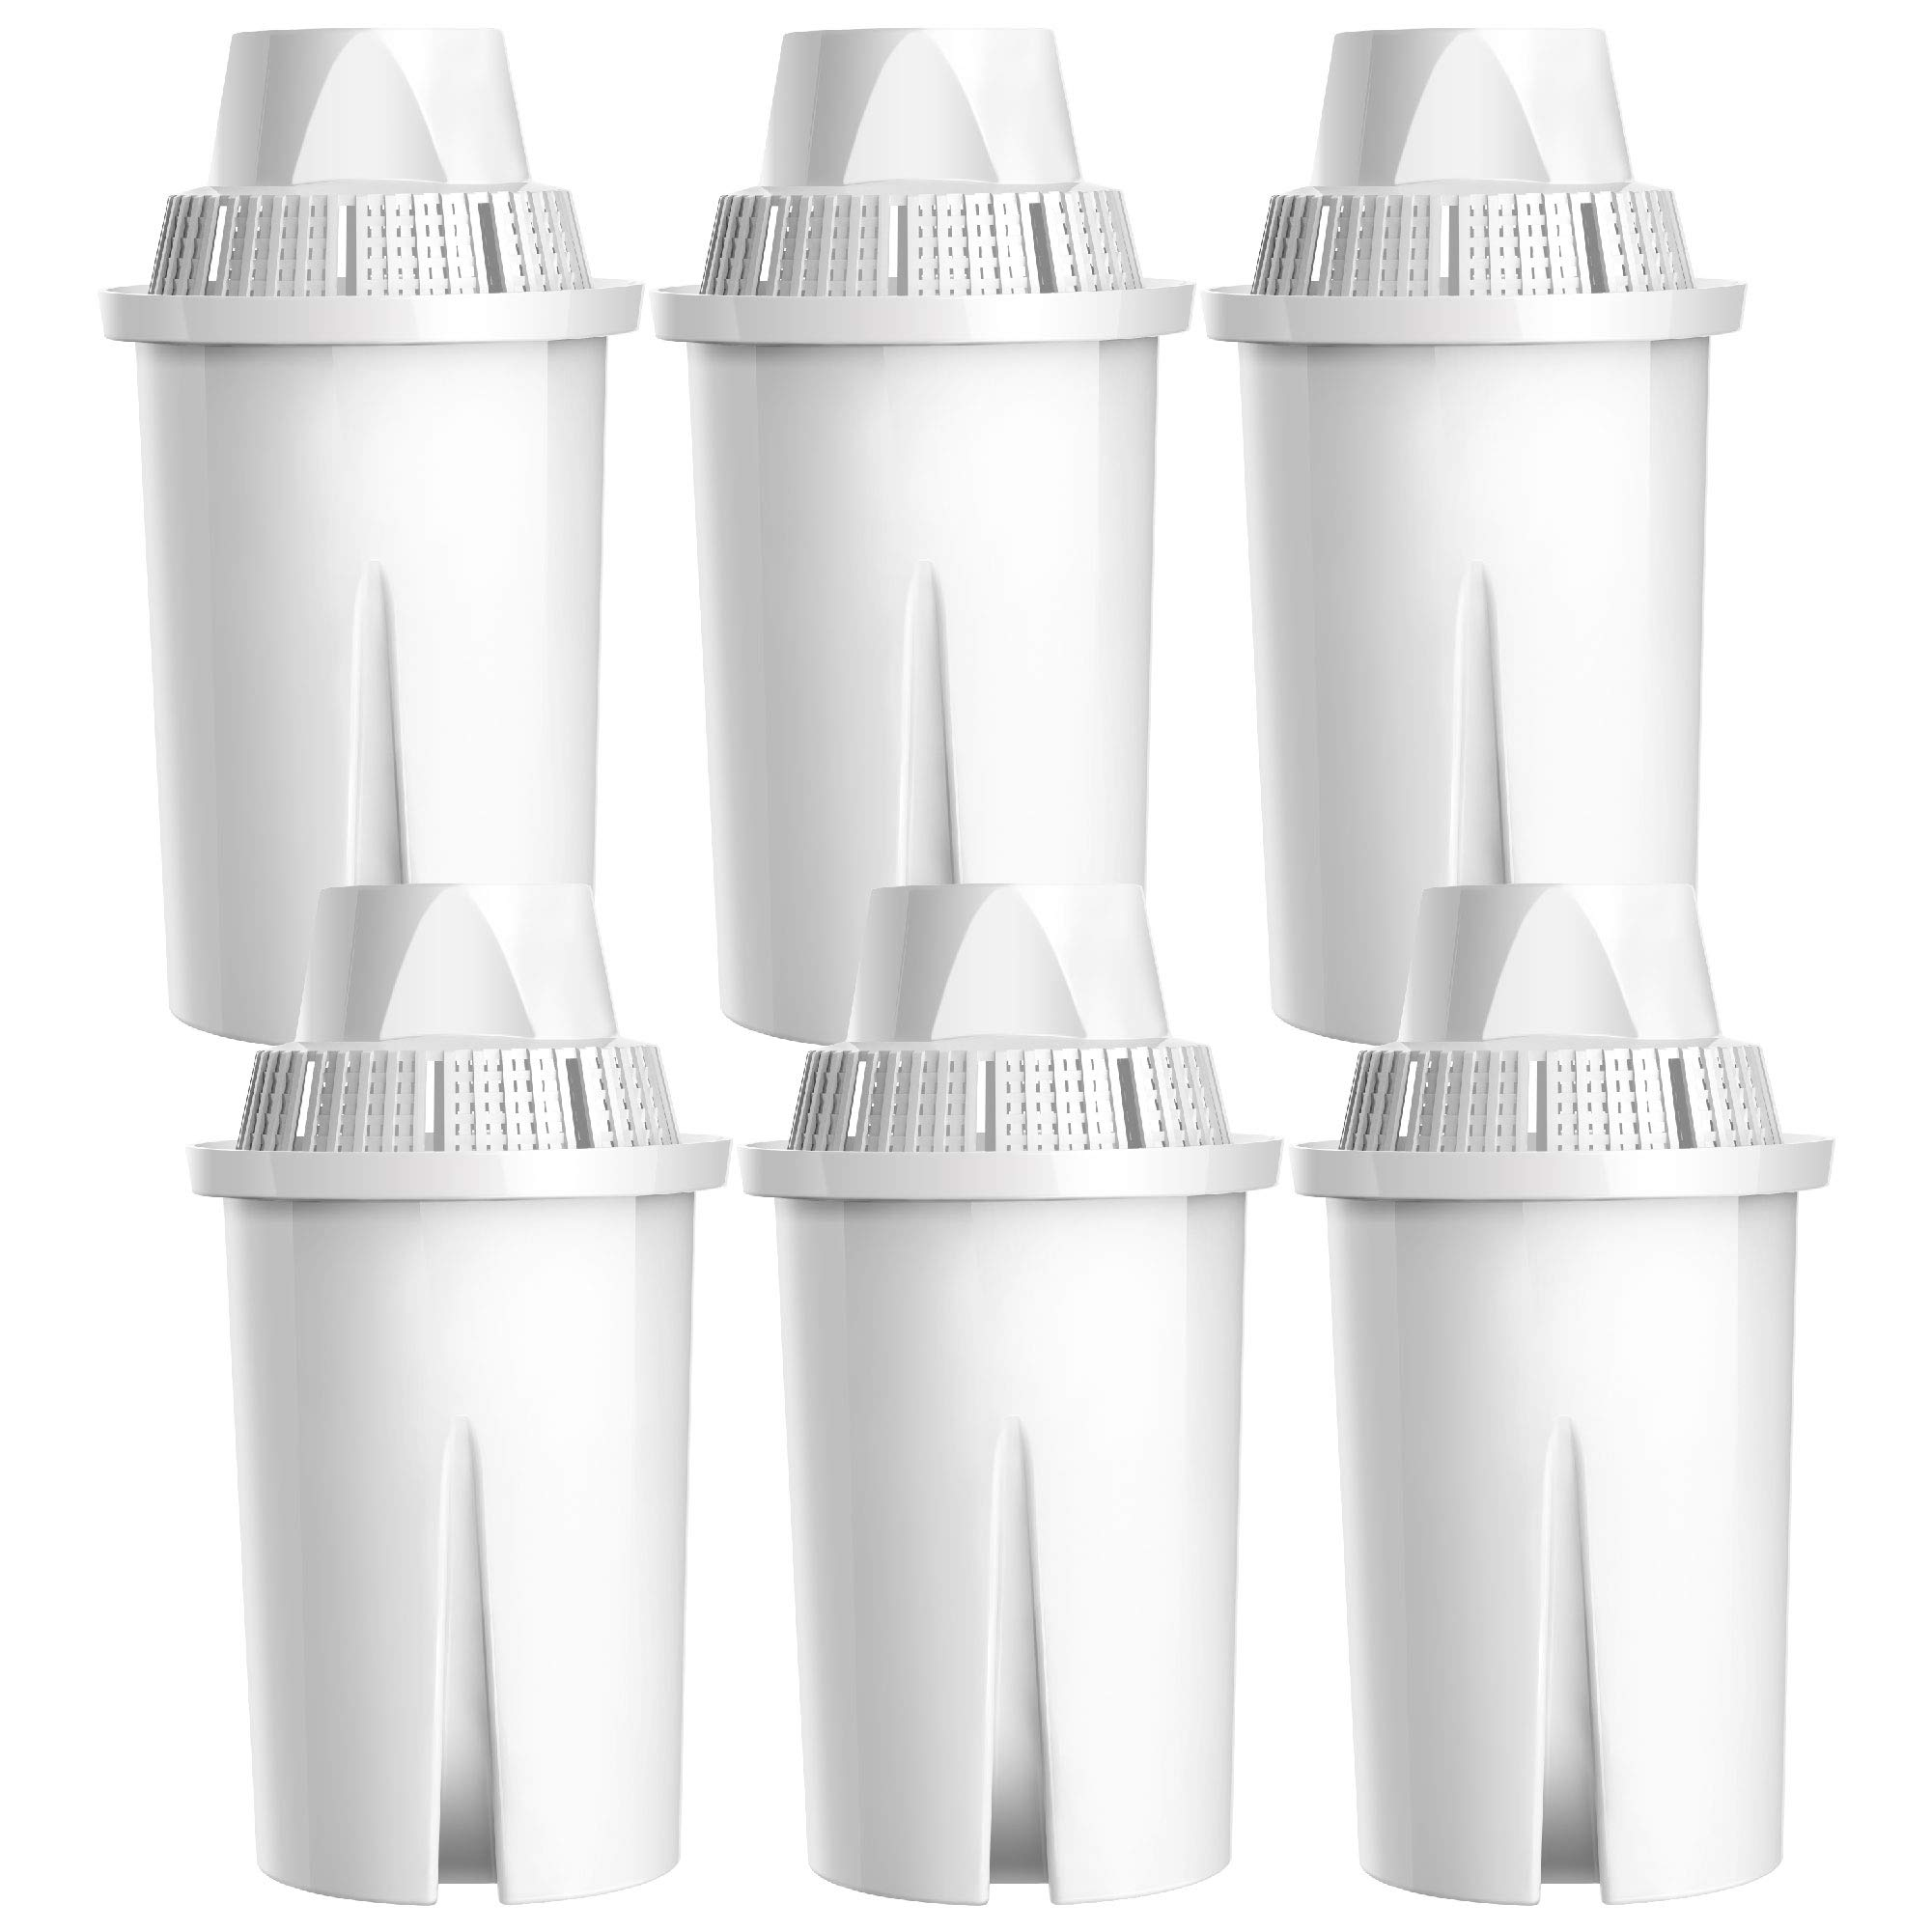 AQUA CREST TÜV SÜD Certified Pitcher Water Filter,Fits Brita Classic 35557, OB03, Mavea 107007, Compatible with Brita Pitchers Grand, Lake, Capri and More, Lead Removal (Pack of 6) by AQUA CREST